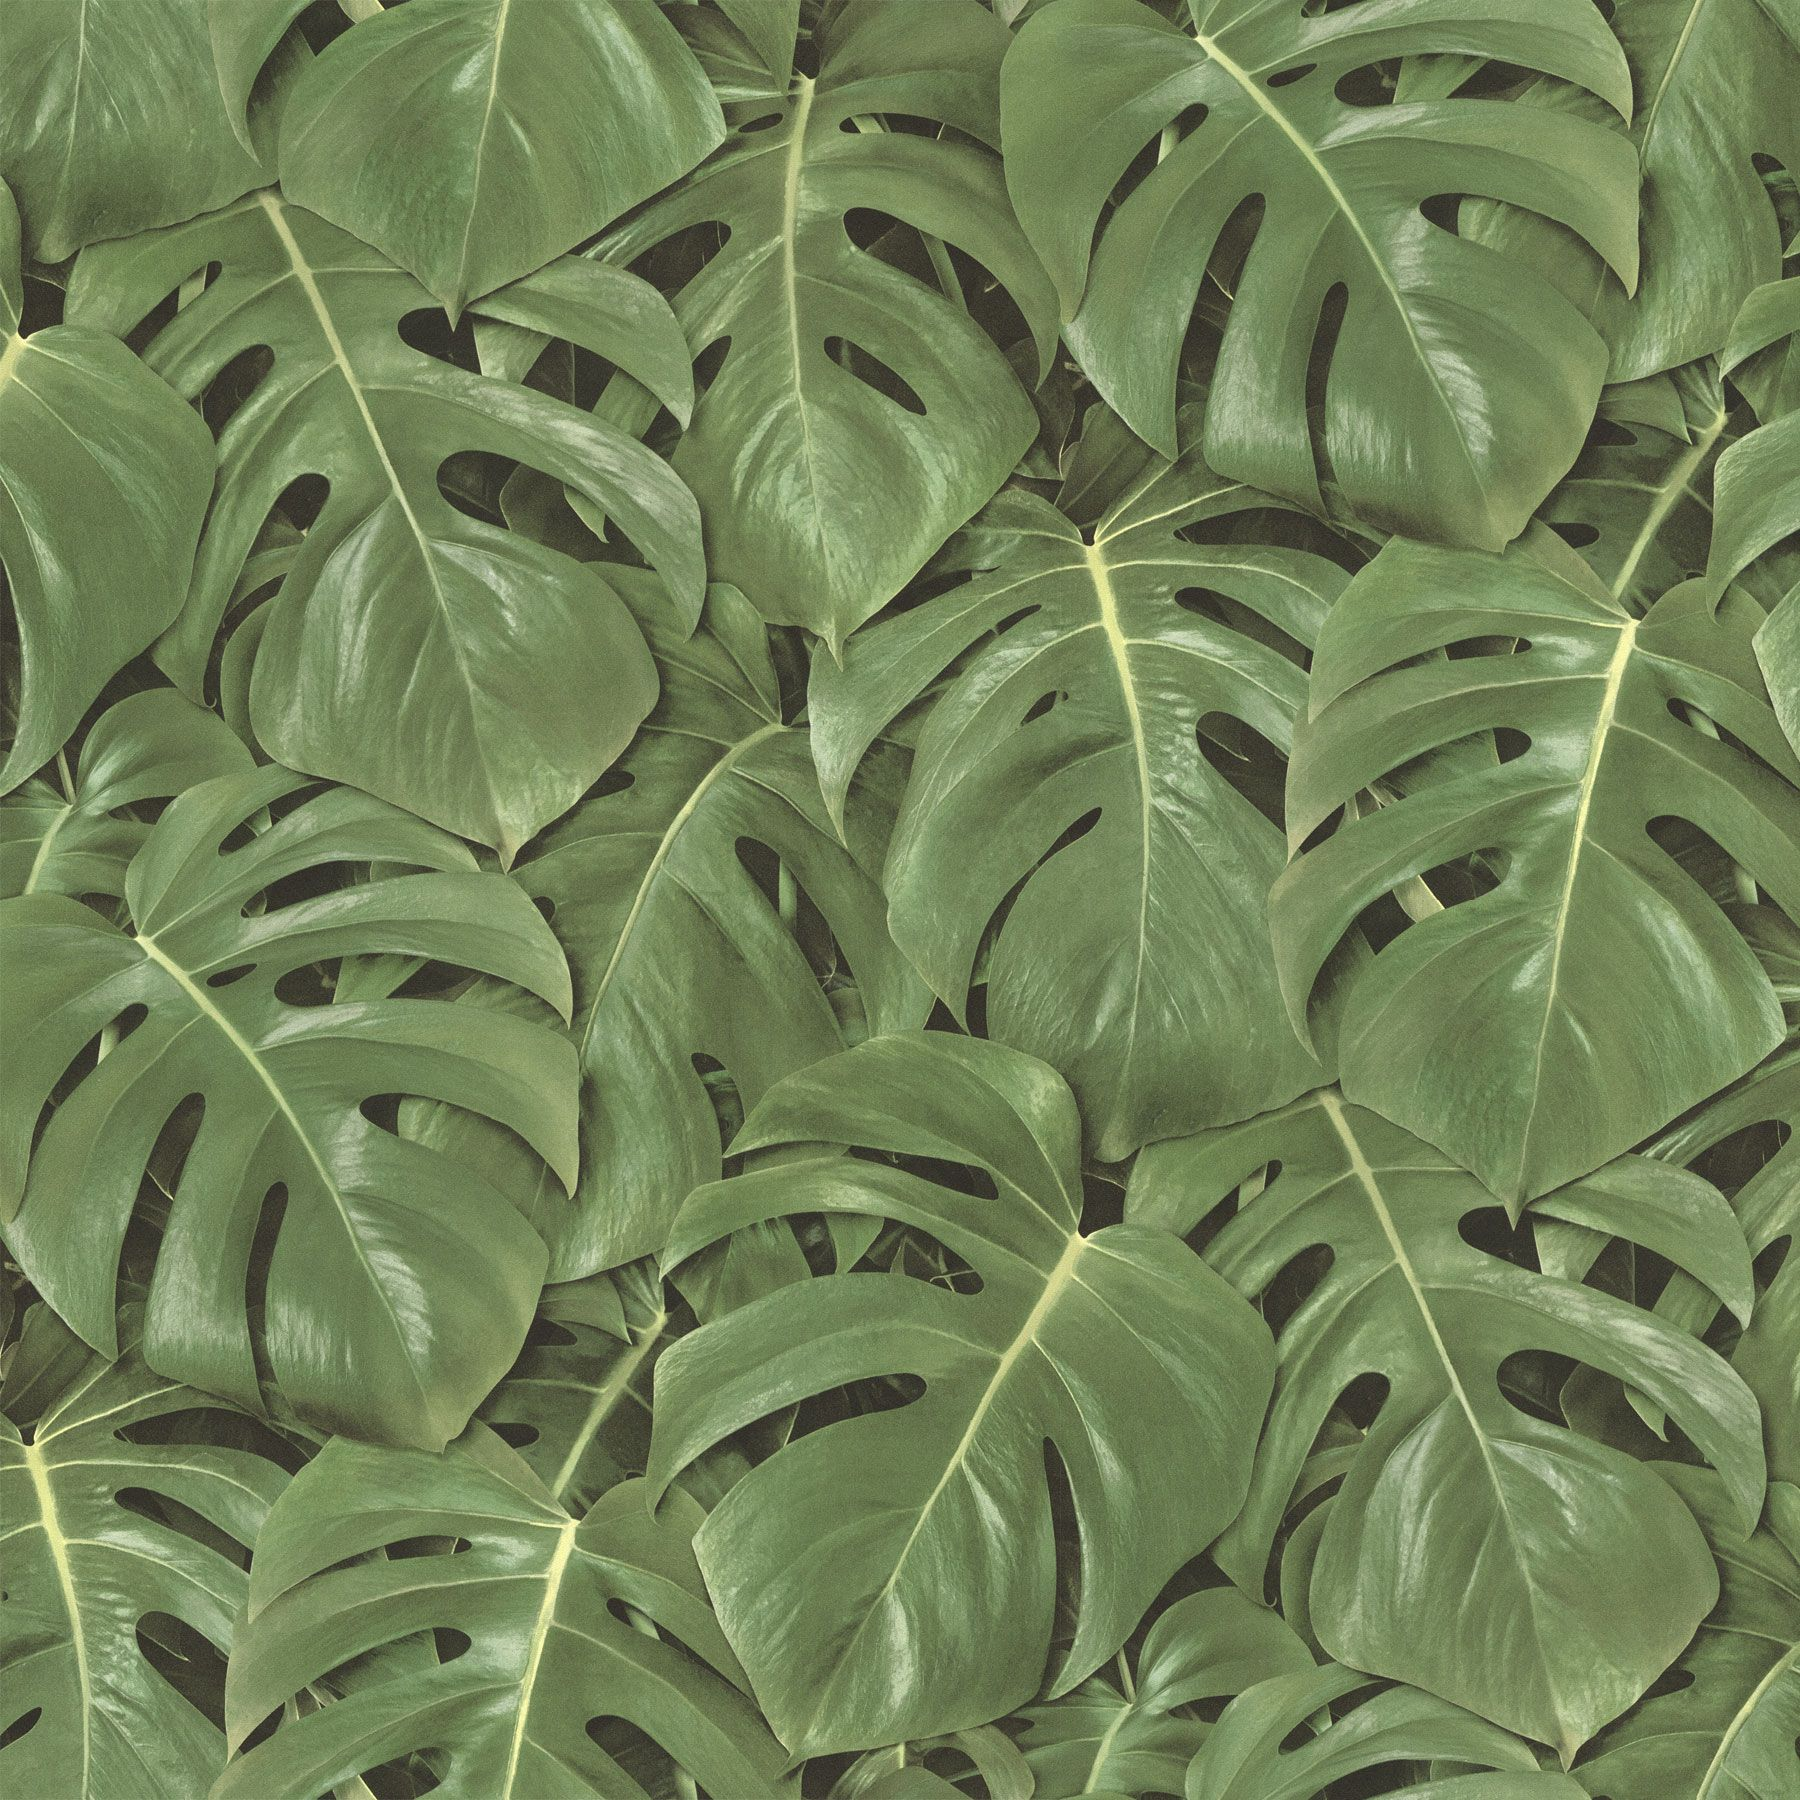 Jungle Leaves Wallpapers Top Free Jungle Leaves Backgrounds Wallpaperaccess Related searches:tropical jungle tropic tropics tropical plants tropical flower tropical flowers tropical leaf tropical fruit tropical plant. jungle leaves wallpapers top free